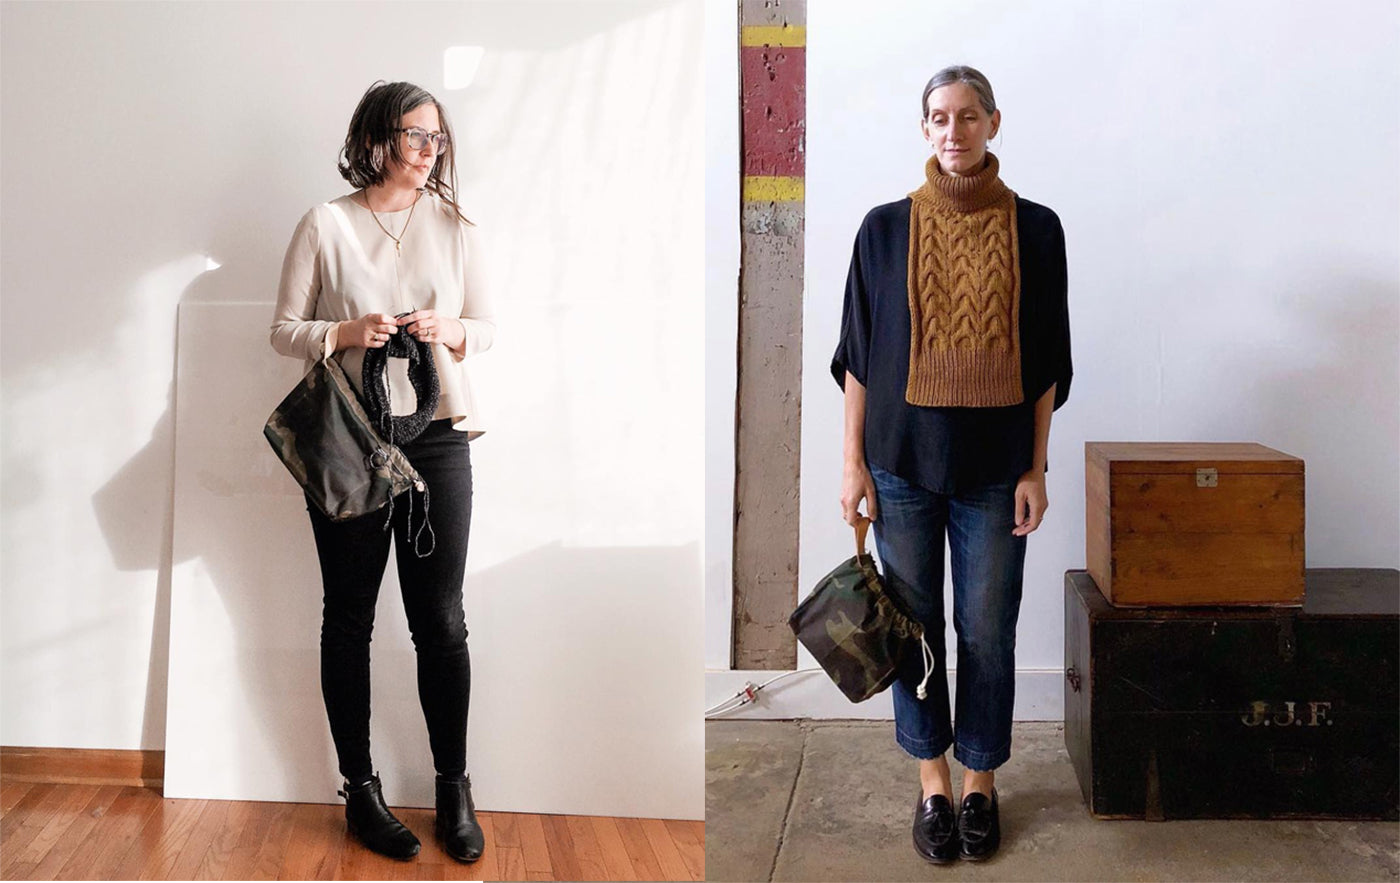 This is an image of Jen Beeman and Karen Templer both standing in different locations holding a knitting bag.